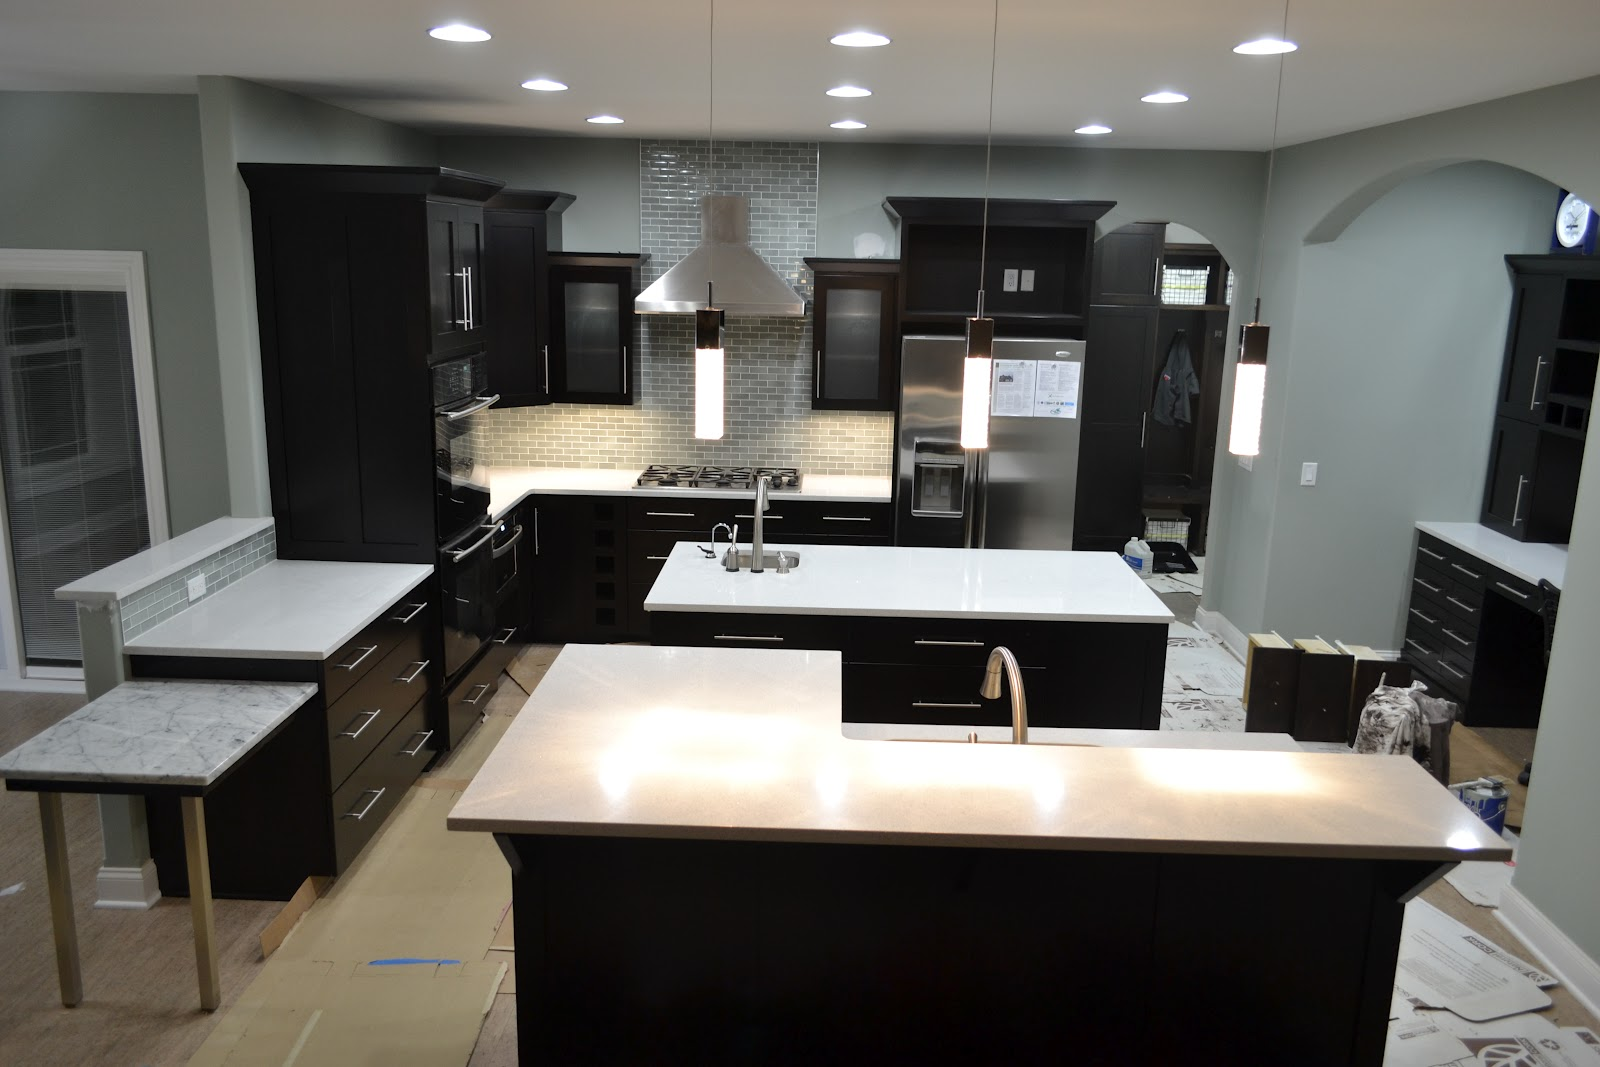 De Jong Dream House Pre Move In Kitchen Tour And Inspiration